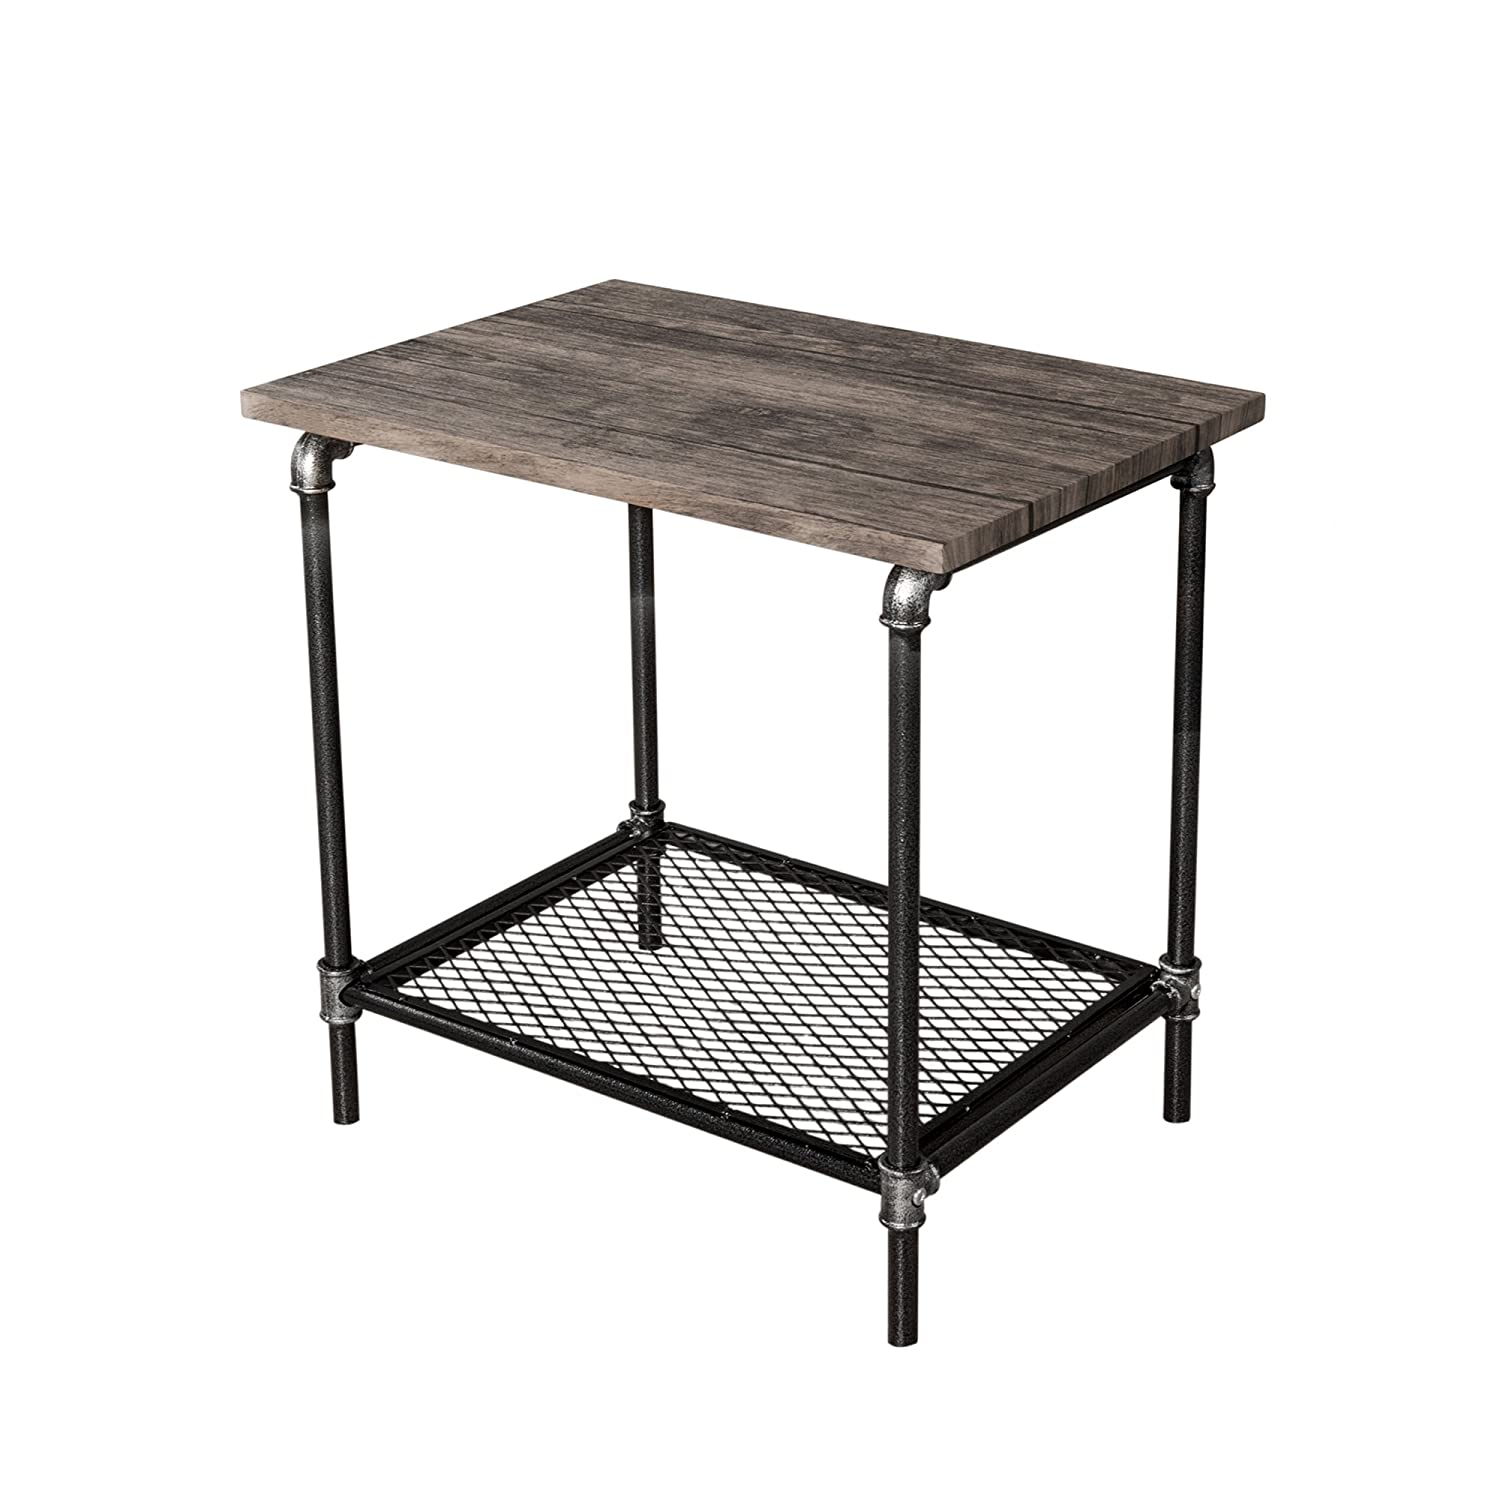 Starsong Retro Antique Industrial Vintage Style End Night Coffee Table Tool Stand With Storage Shelf